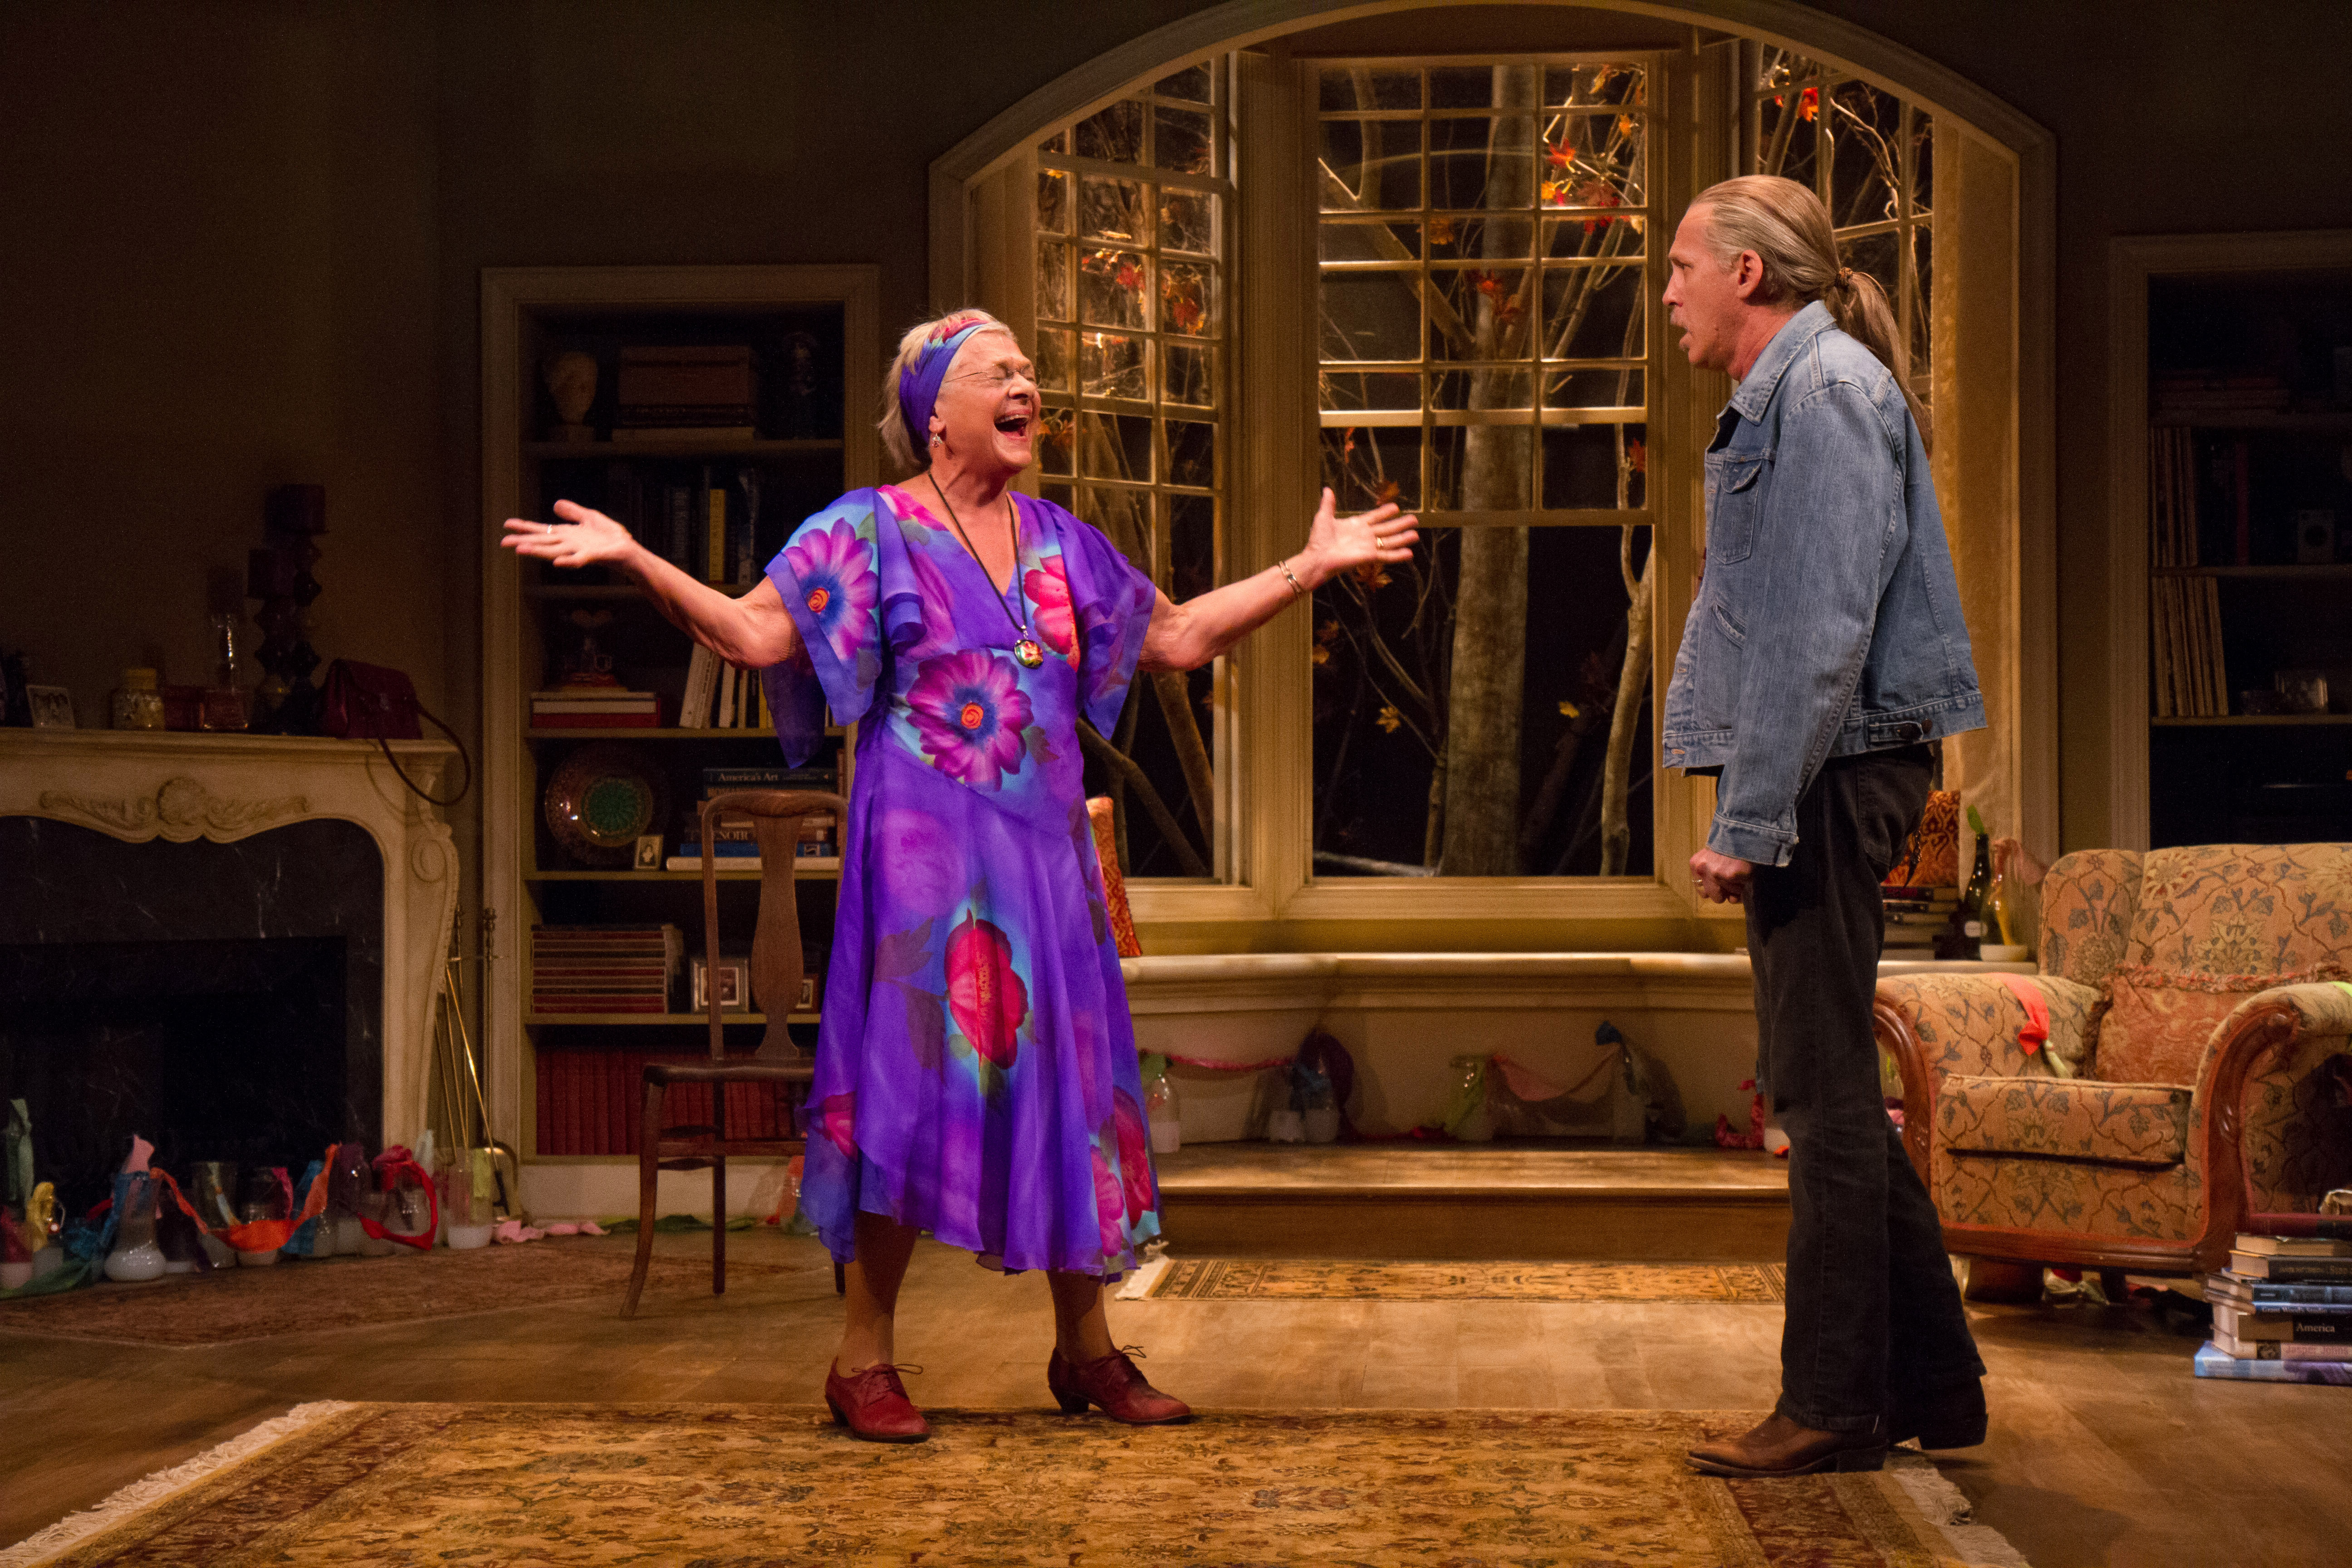 'The Velocity of Autumn' opens a dialogue on struggles with age, family